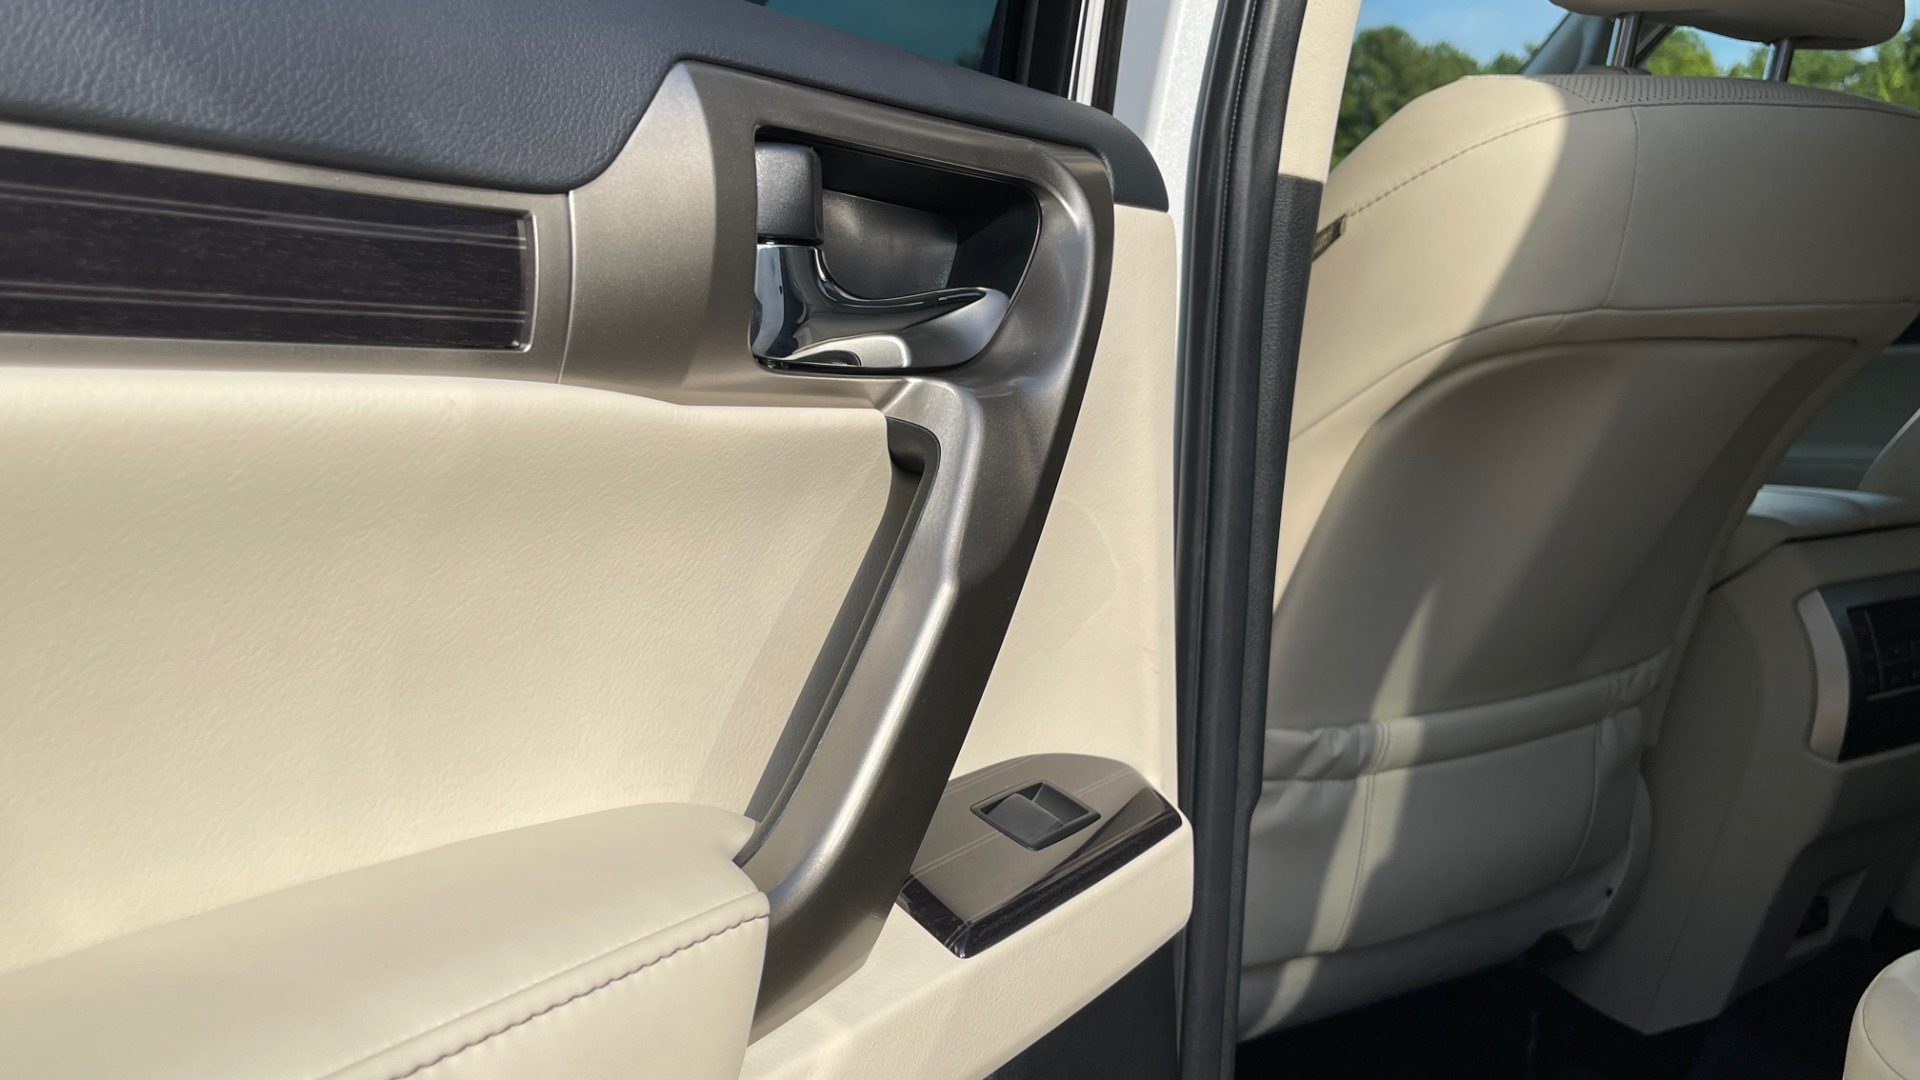 Used 2020 Lexus GX 460 PREMIUM / AWD / NAV / SUNROOF / 3-ROW / REARVIEW for sale $54,495 at Formula Imports in Charlotte NC 28227 51